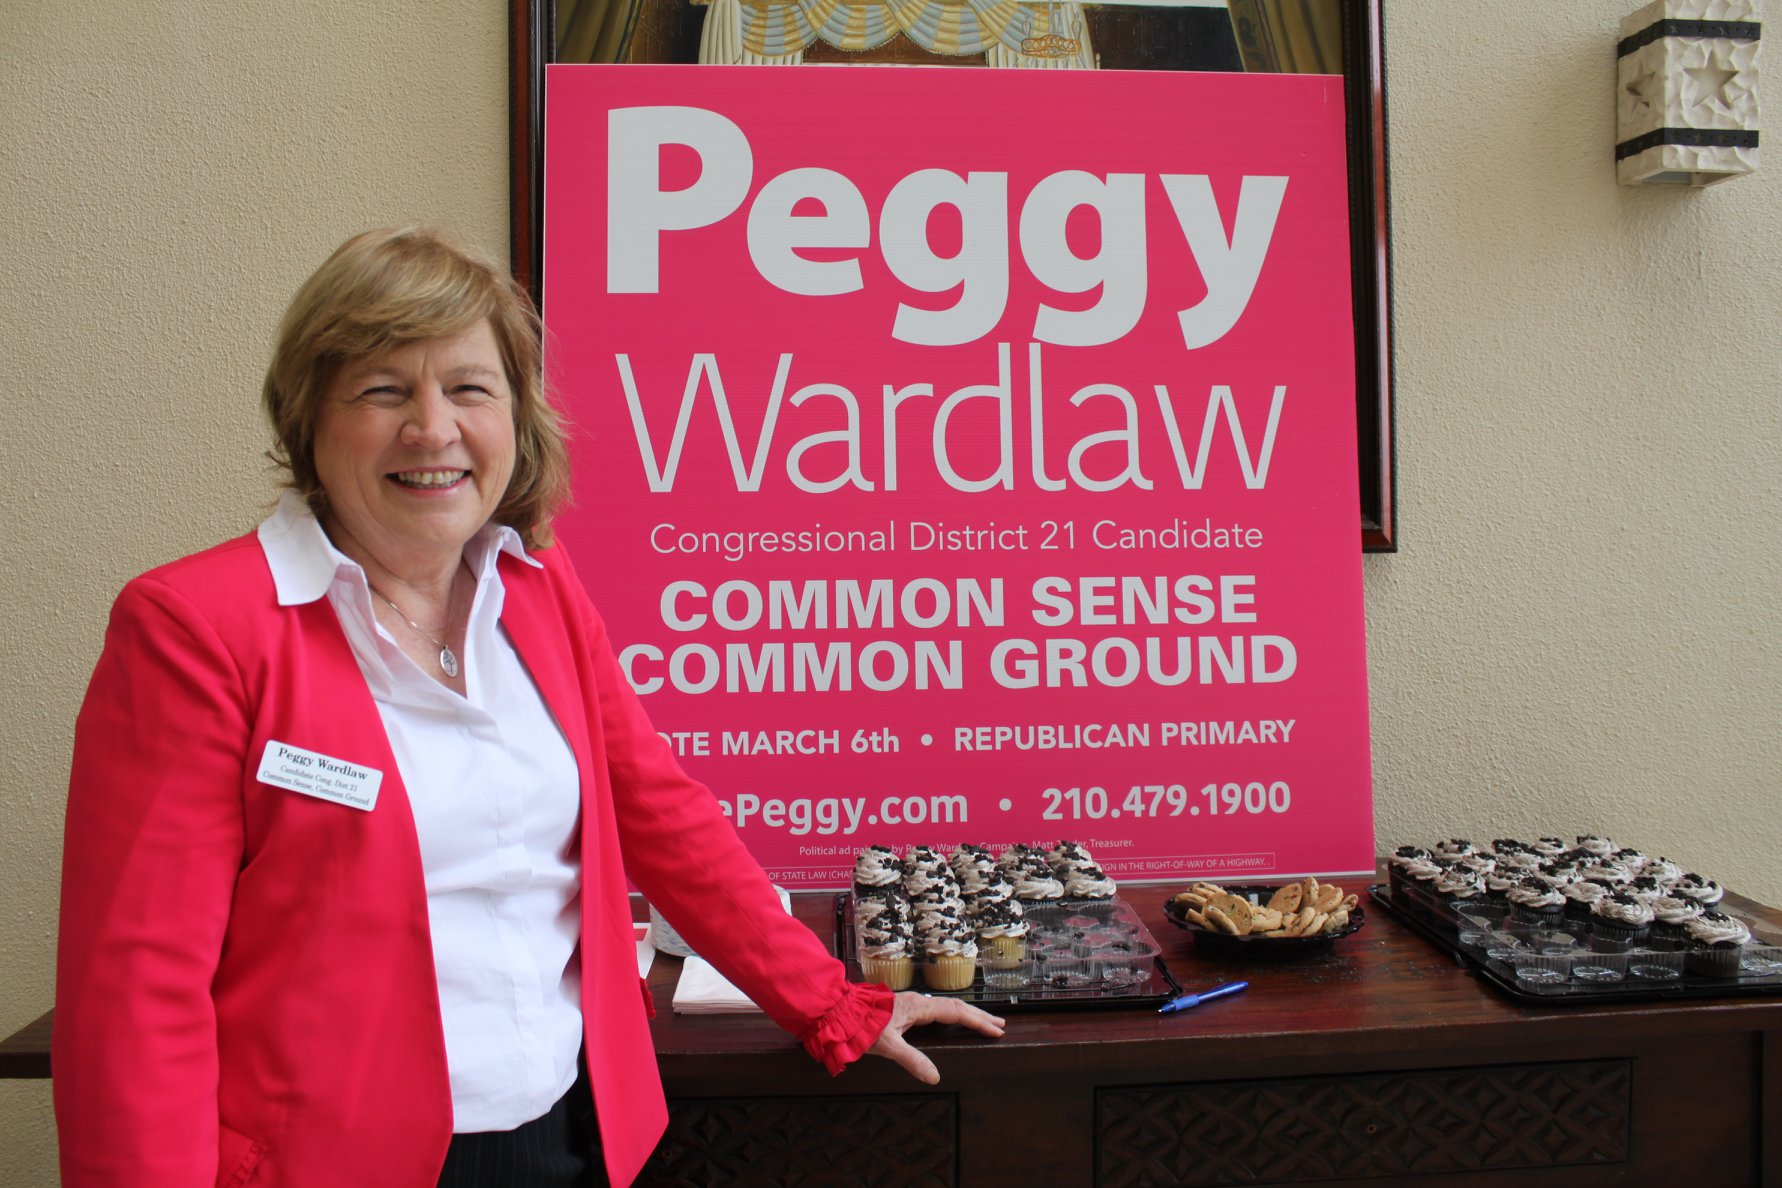 Peggy Wardlaw